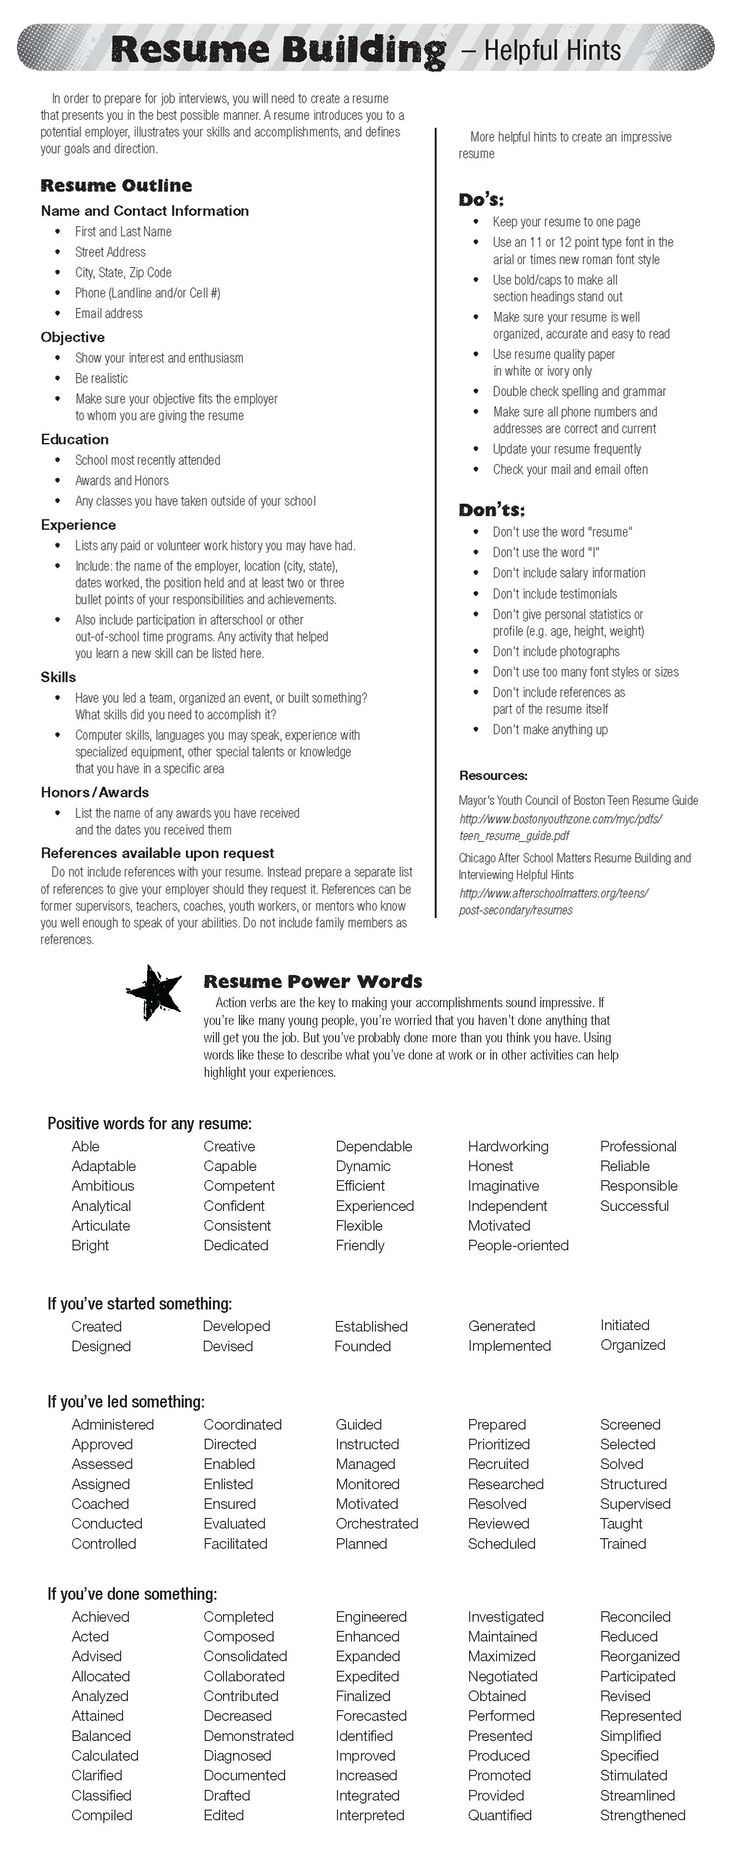 Opposenewapstandardsus  Wonderful  Ideas About Resume On Pinterest  Cv Format Resume Cv And  With Marvelous  Ideas About Resume On Pinterest  Cv Format Resume Cv And Resume Templates With Astounding High School Degree On Resume Also Resume Writing Reviews In Addition Resume Self Employed And Software Engineer Resumes As Well As Front Office Manager Resume Additionally Best Site To Post Resume From Pinterestcom With Opposenewapstandardsus  Marvelous  Ideas About Resume On Pinterest  Cv Format Resume Cv And  With Astounding  Ideas About Resume On Pinterest  Cv Format Resume Cv And Resume Templates And Wonderful High School Degree On Resume Also Resume Writing Reviews In Addition Resume Self Employed From Pinterestcom